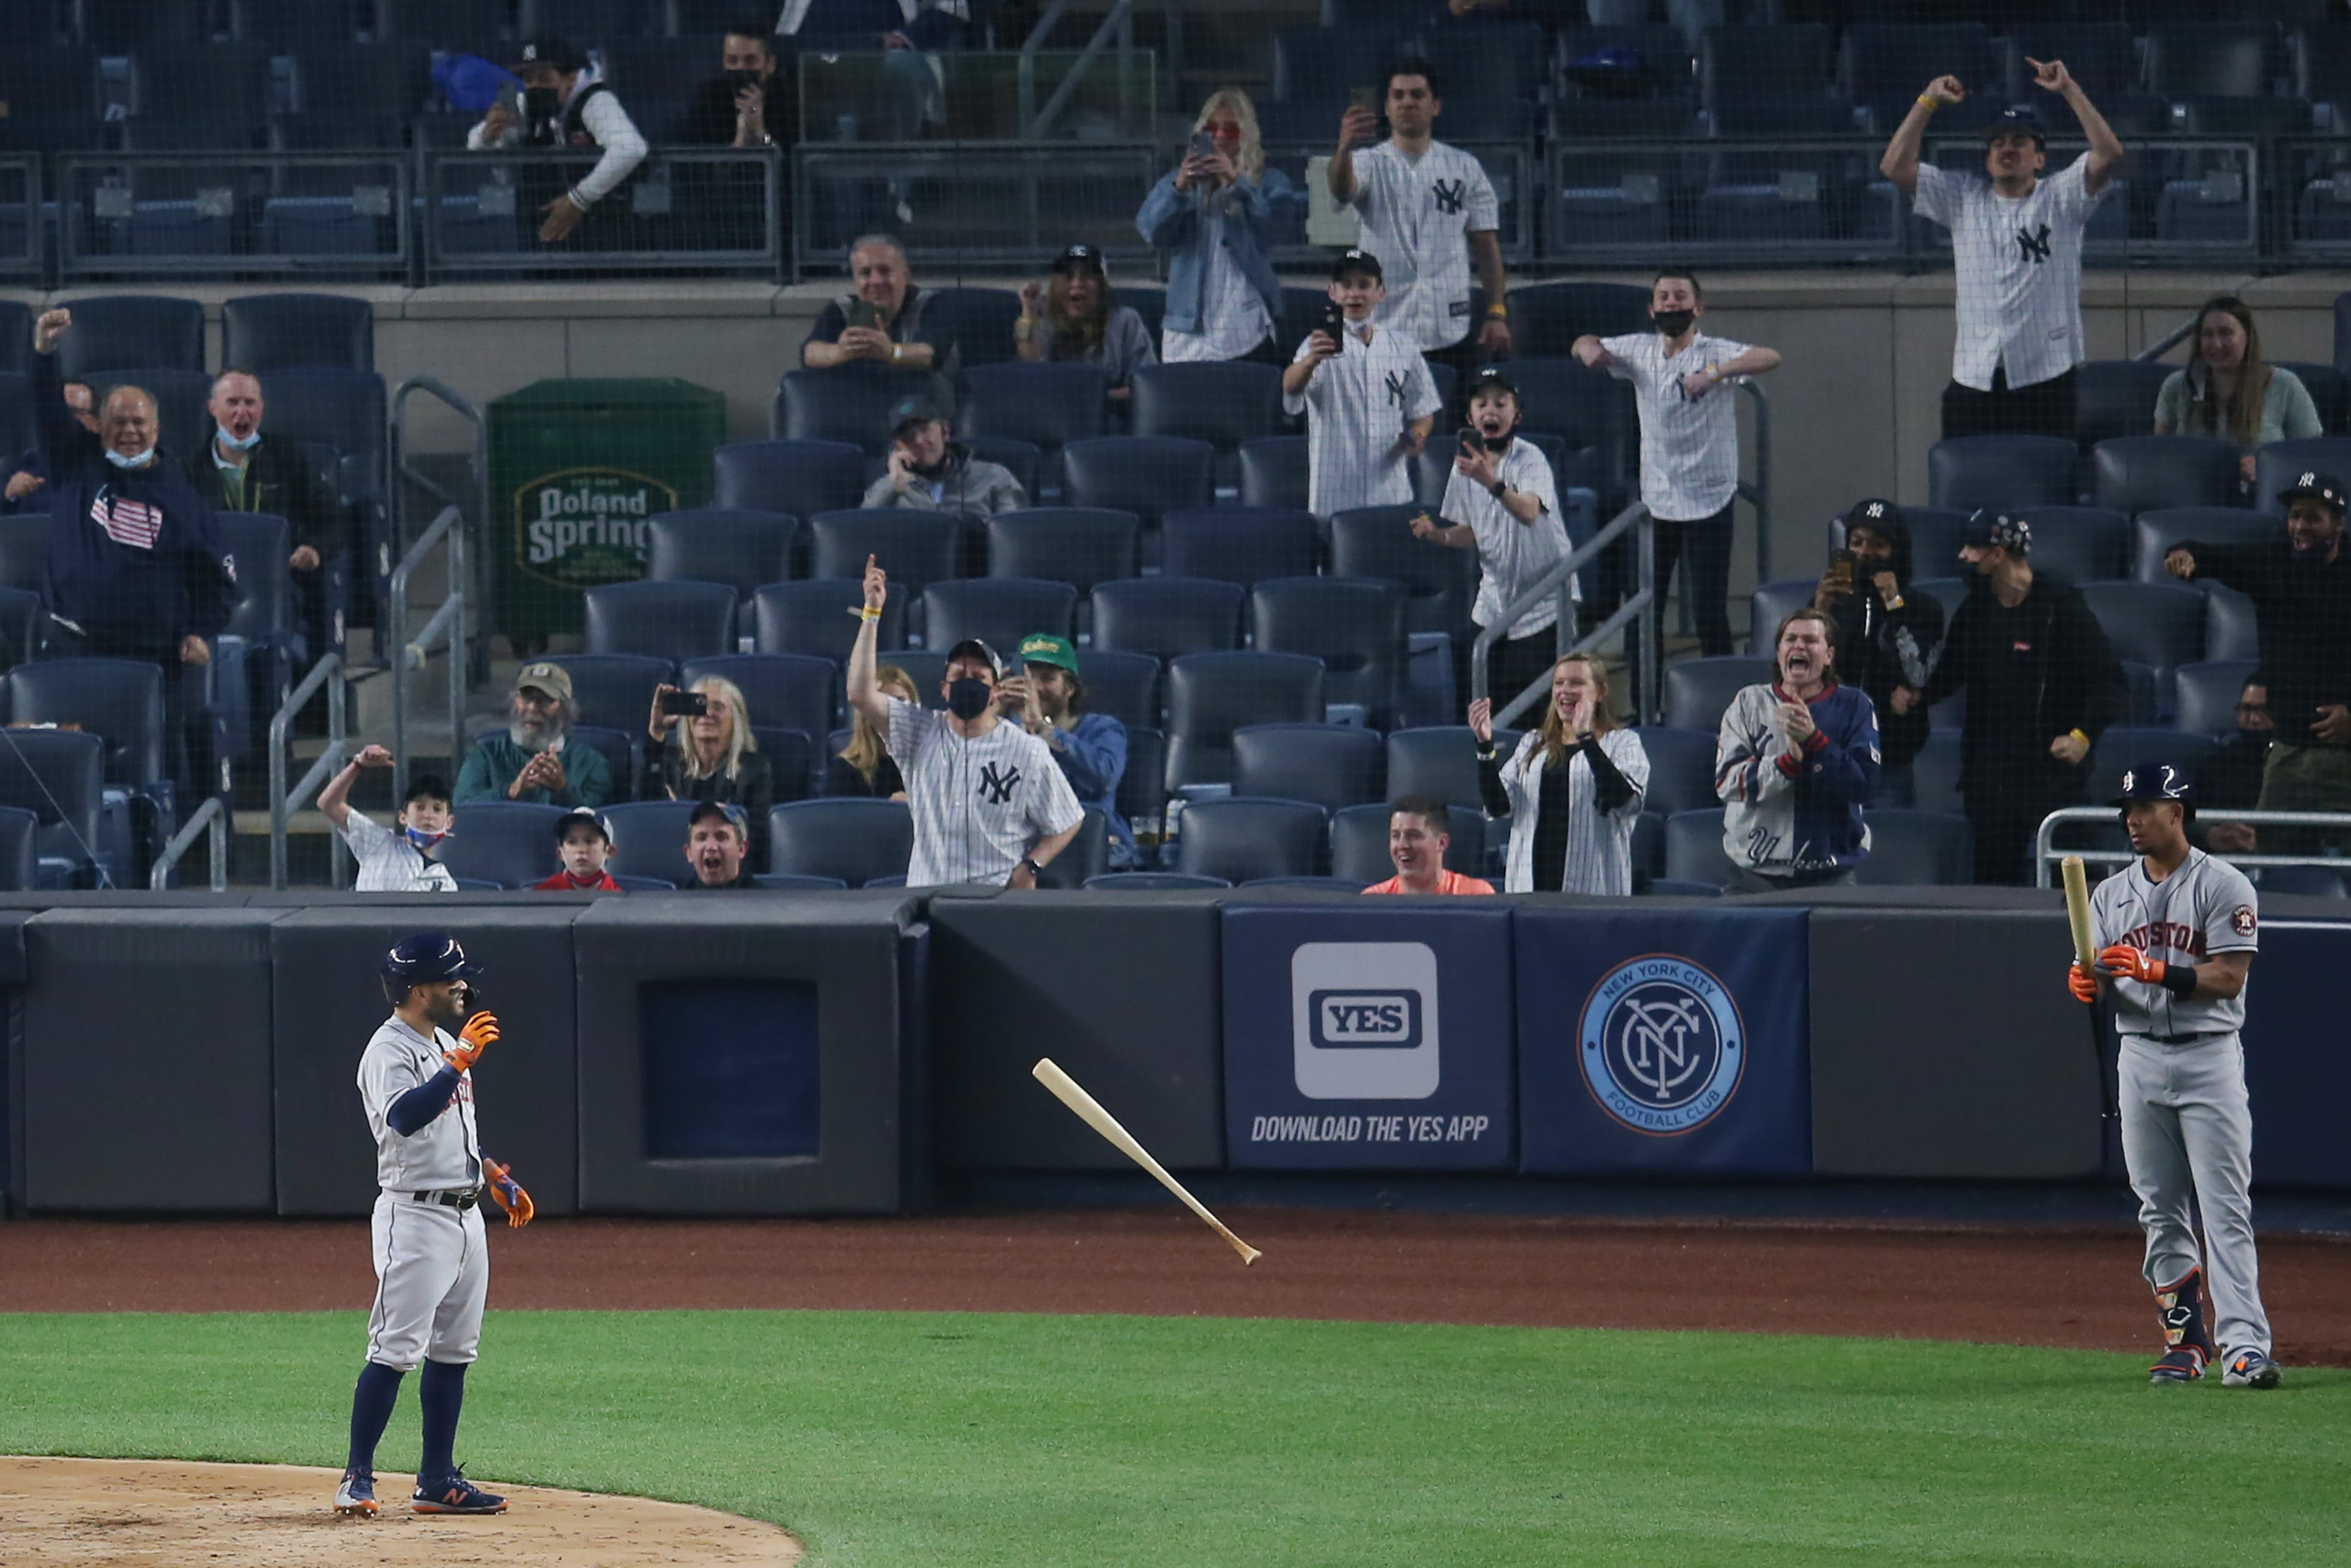 The fans let them have it : Yankees – and boisterous Bronx crowd – get measure of revenge vs. Astros